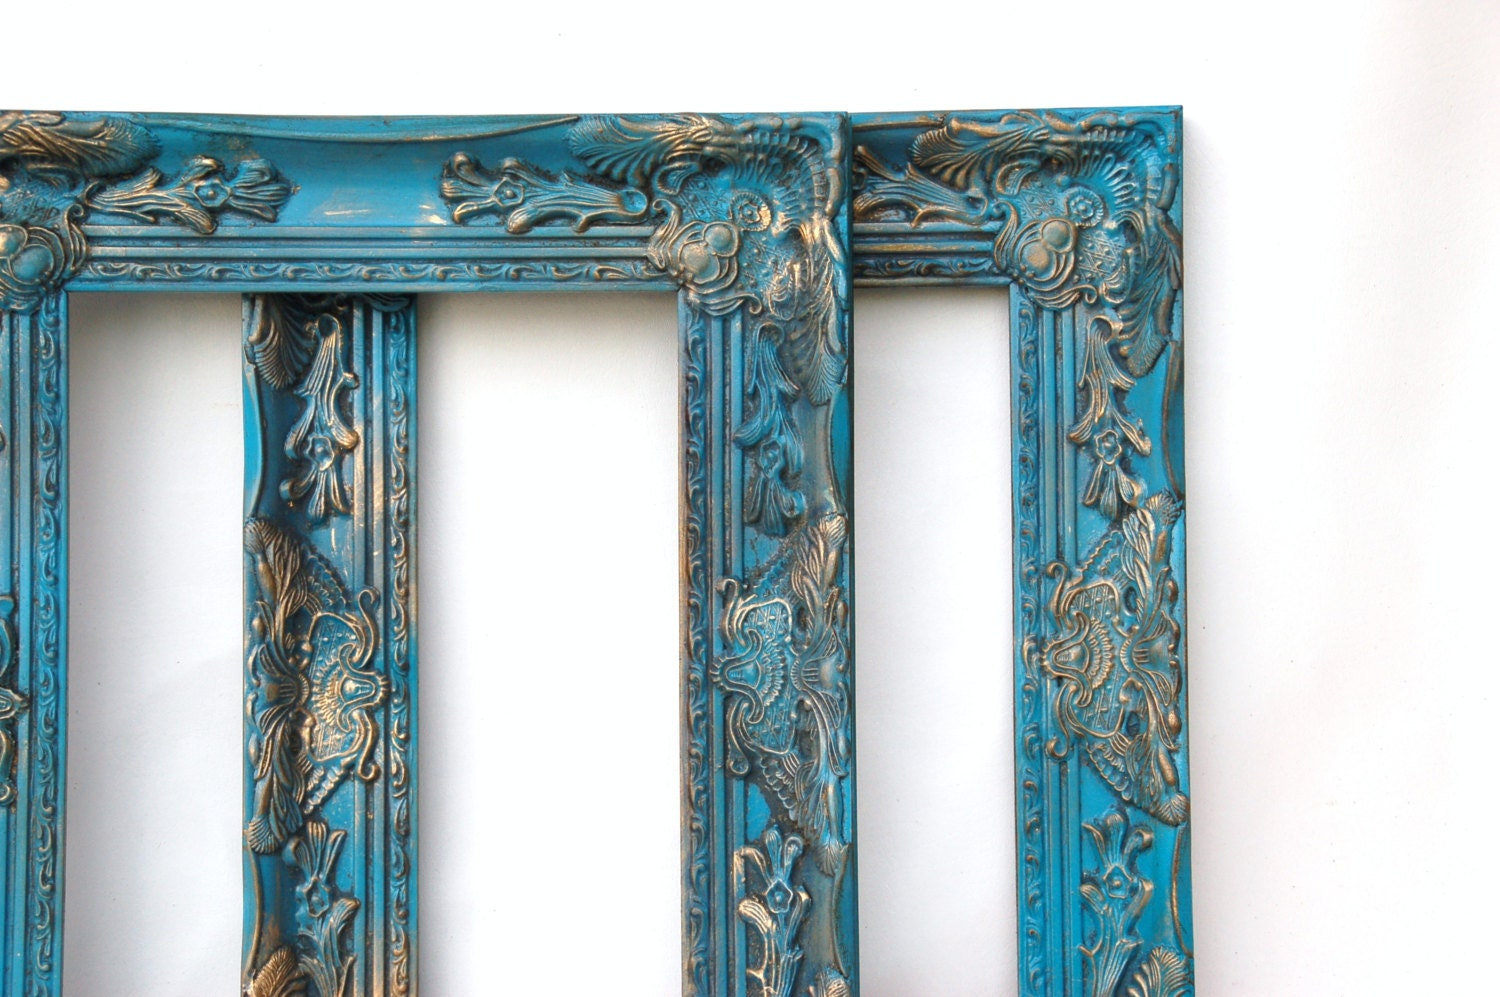 Turquoise picture frame  Etsy AU